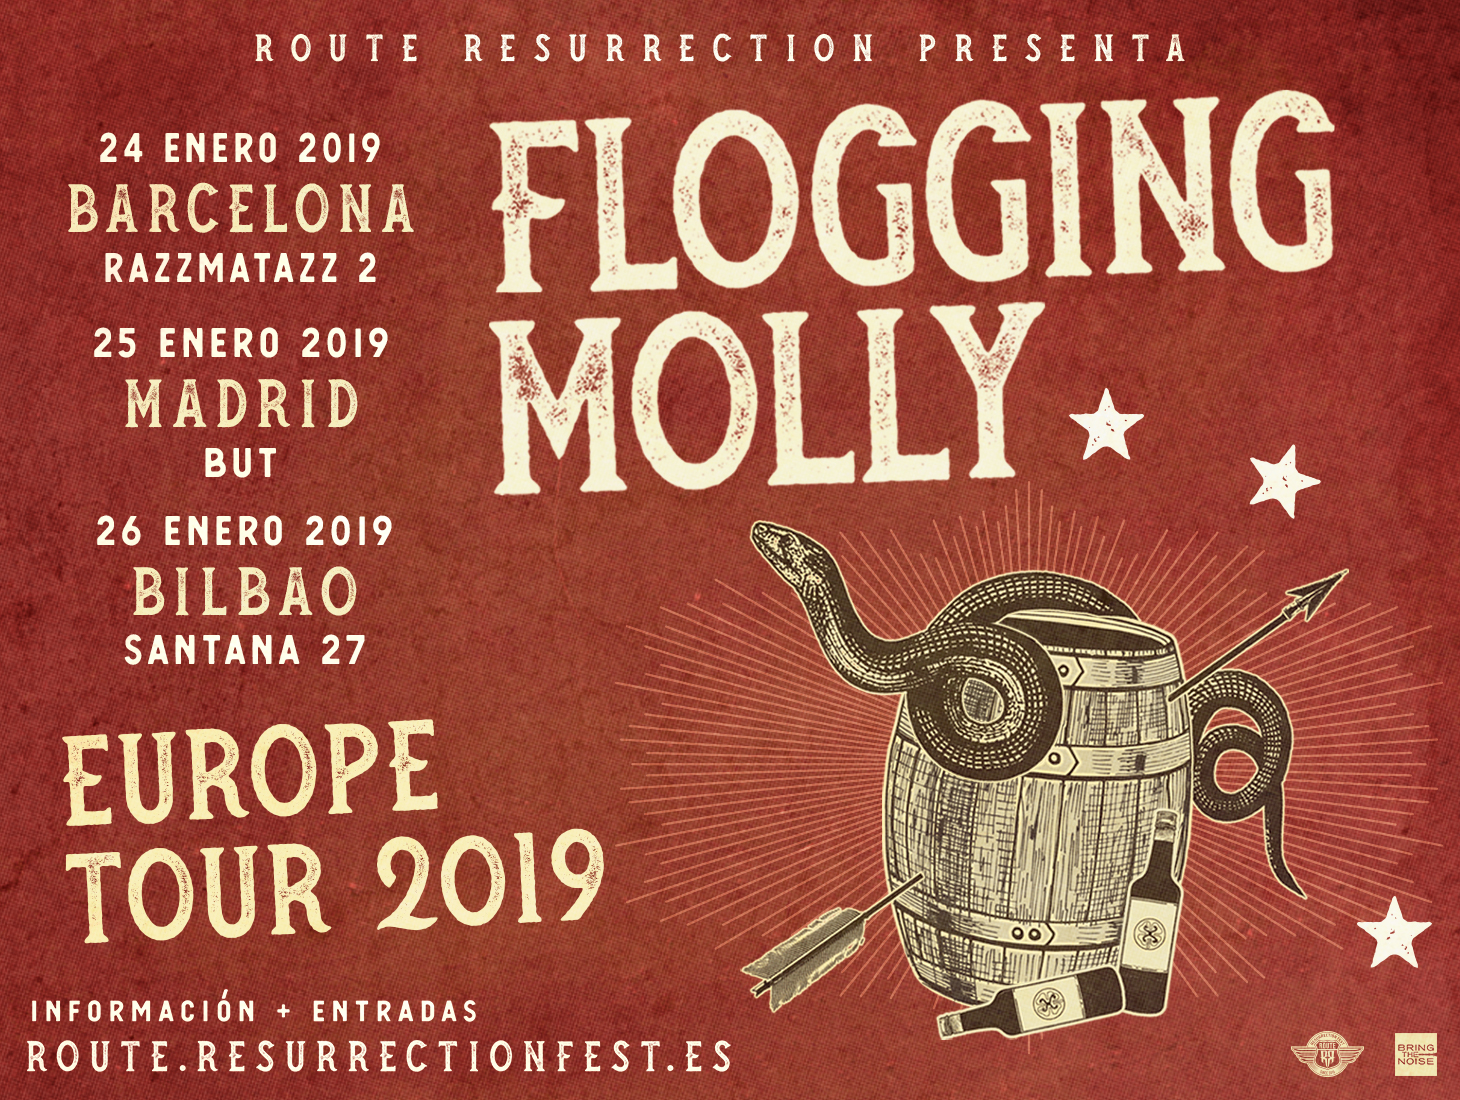 gira-2019-flogging-molly-en-madrid-5bcdb